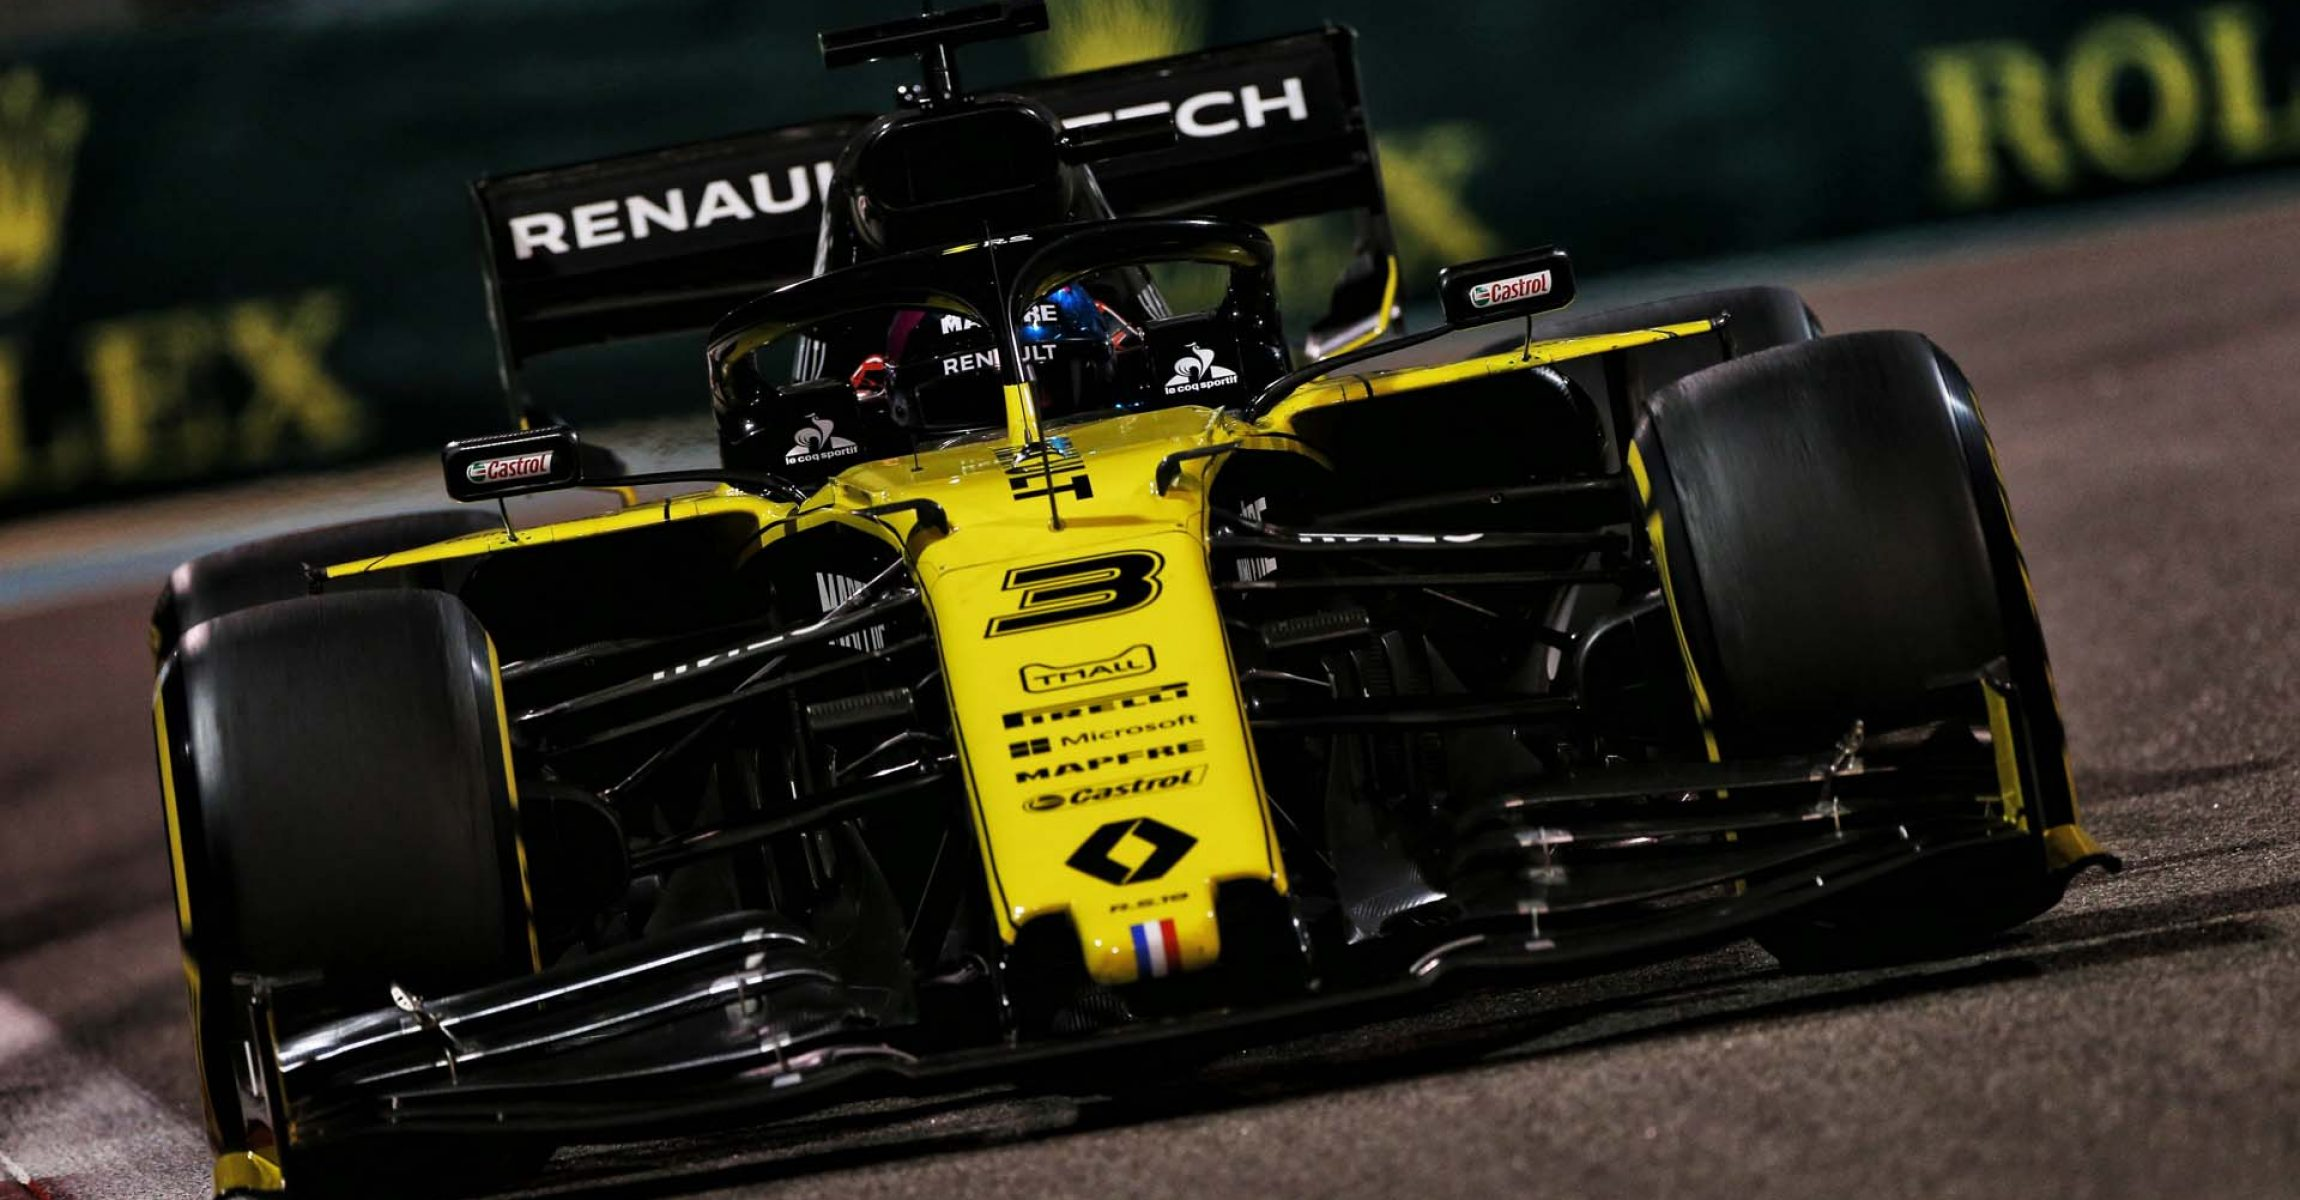 Daniel Ricciardo (AUS) Renault F1 Team RS19. Abu Dhabi Grand Prix, Friday 29th November 2019. Yas Marina Circuit, Abu Dhabi, UAE.